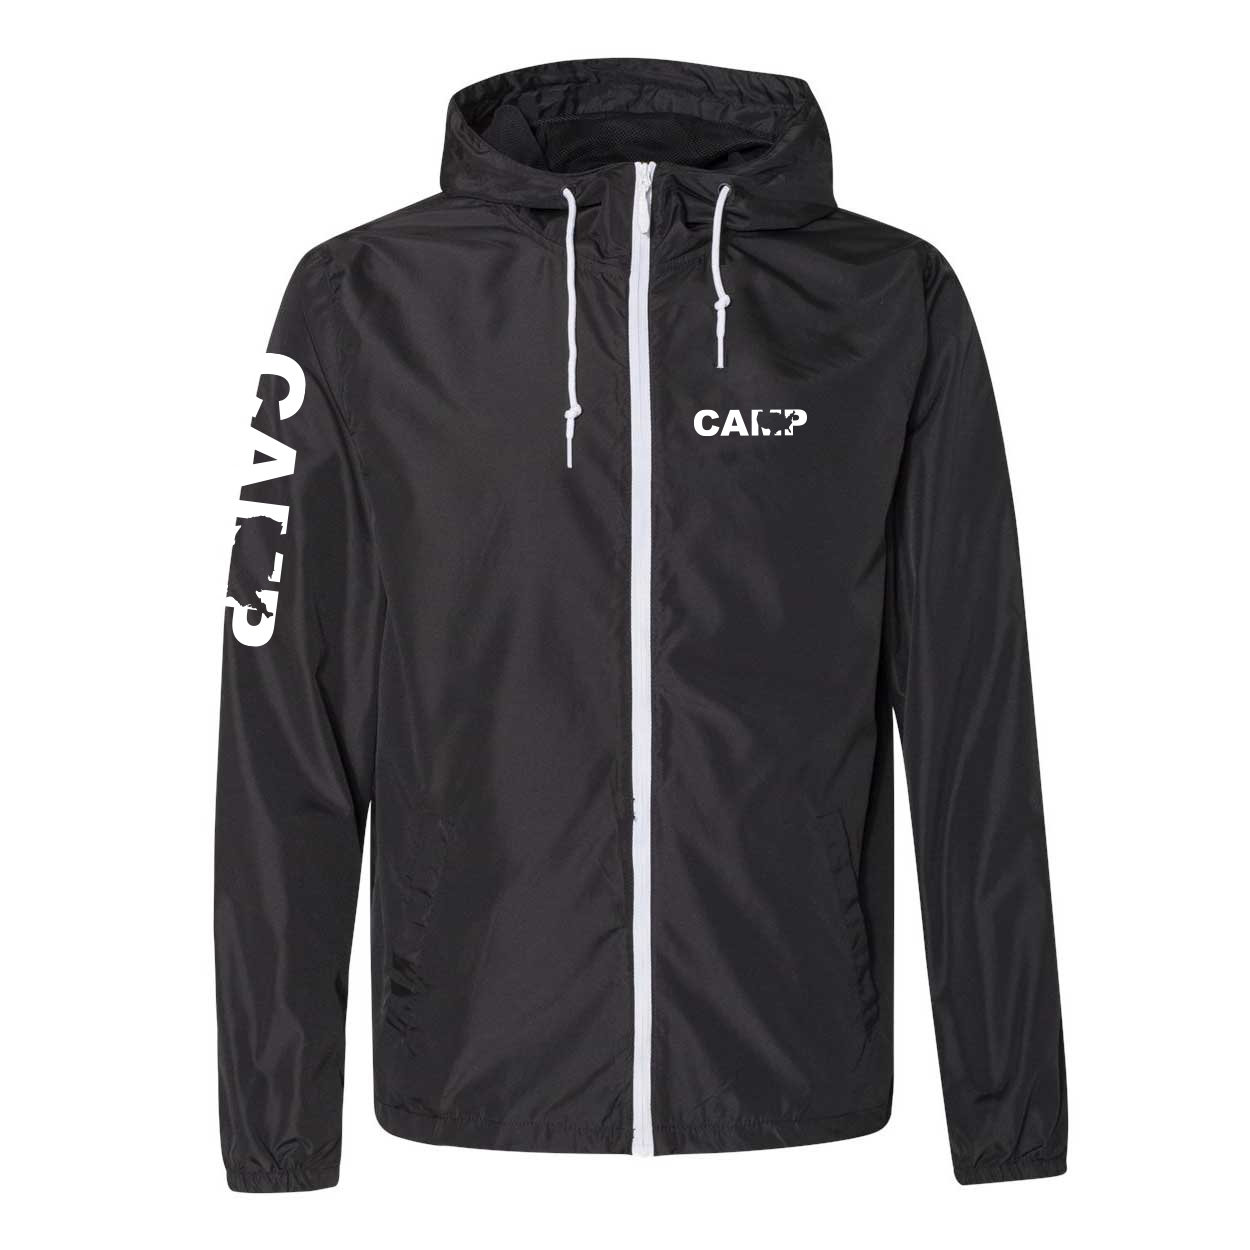 Camp United States Classic Lightweight Windbreaker Black/White (White Logo)